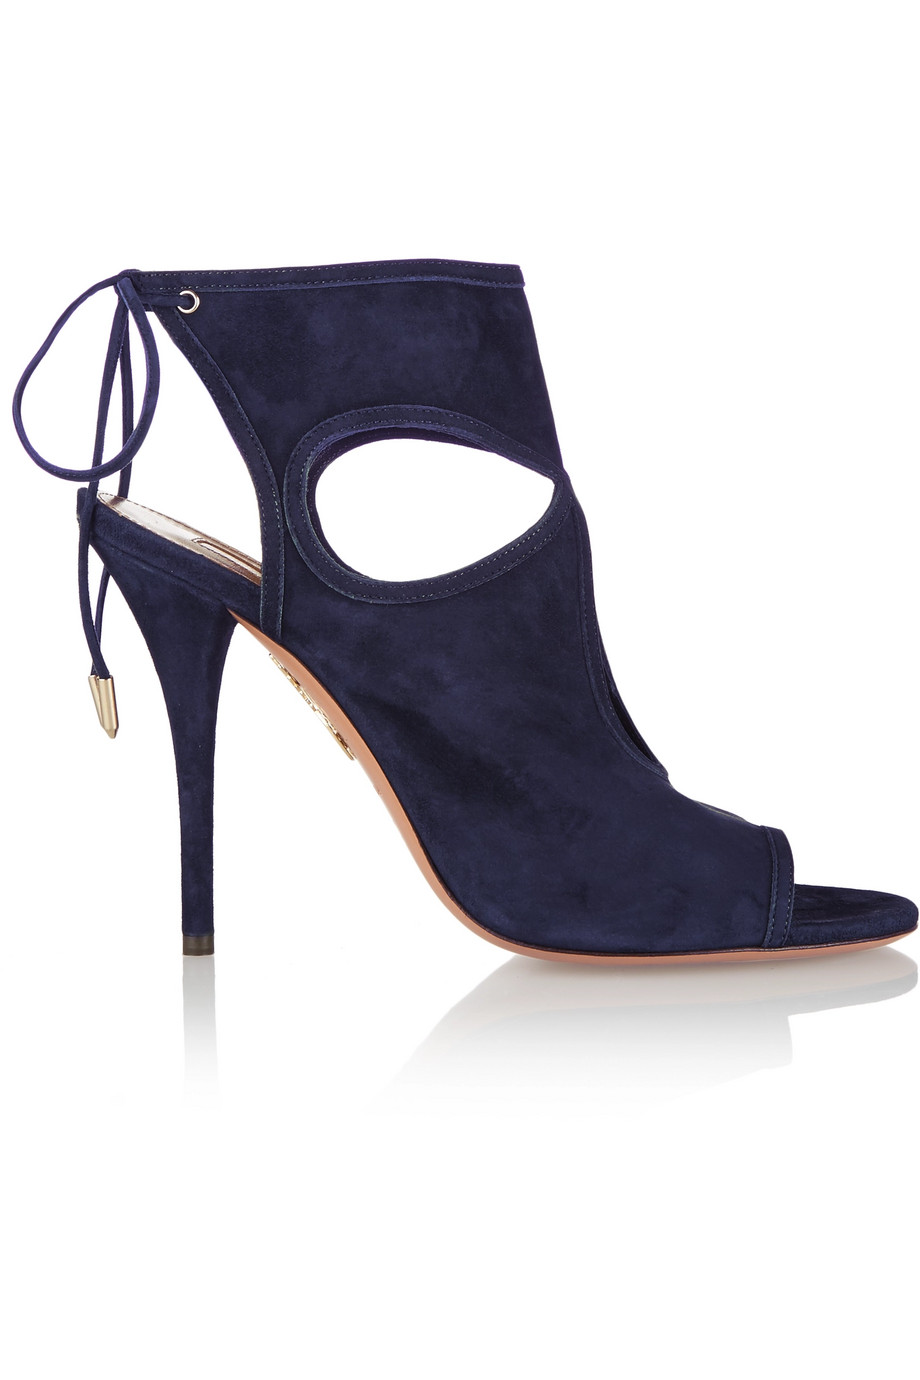 Aquazzura Sexy Thing Cutout Suede Sandals, Navy, Women's US Size: 6.5, Size: 37